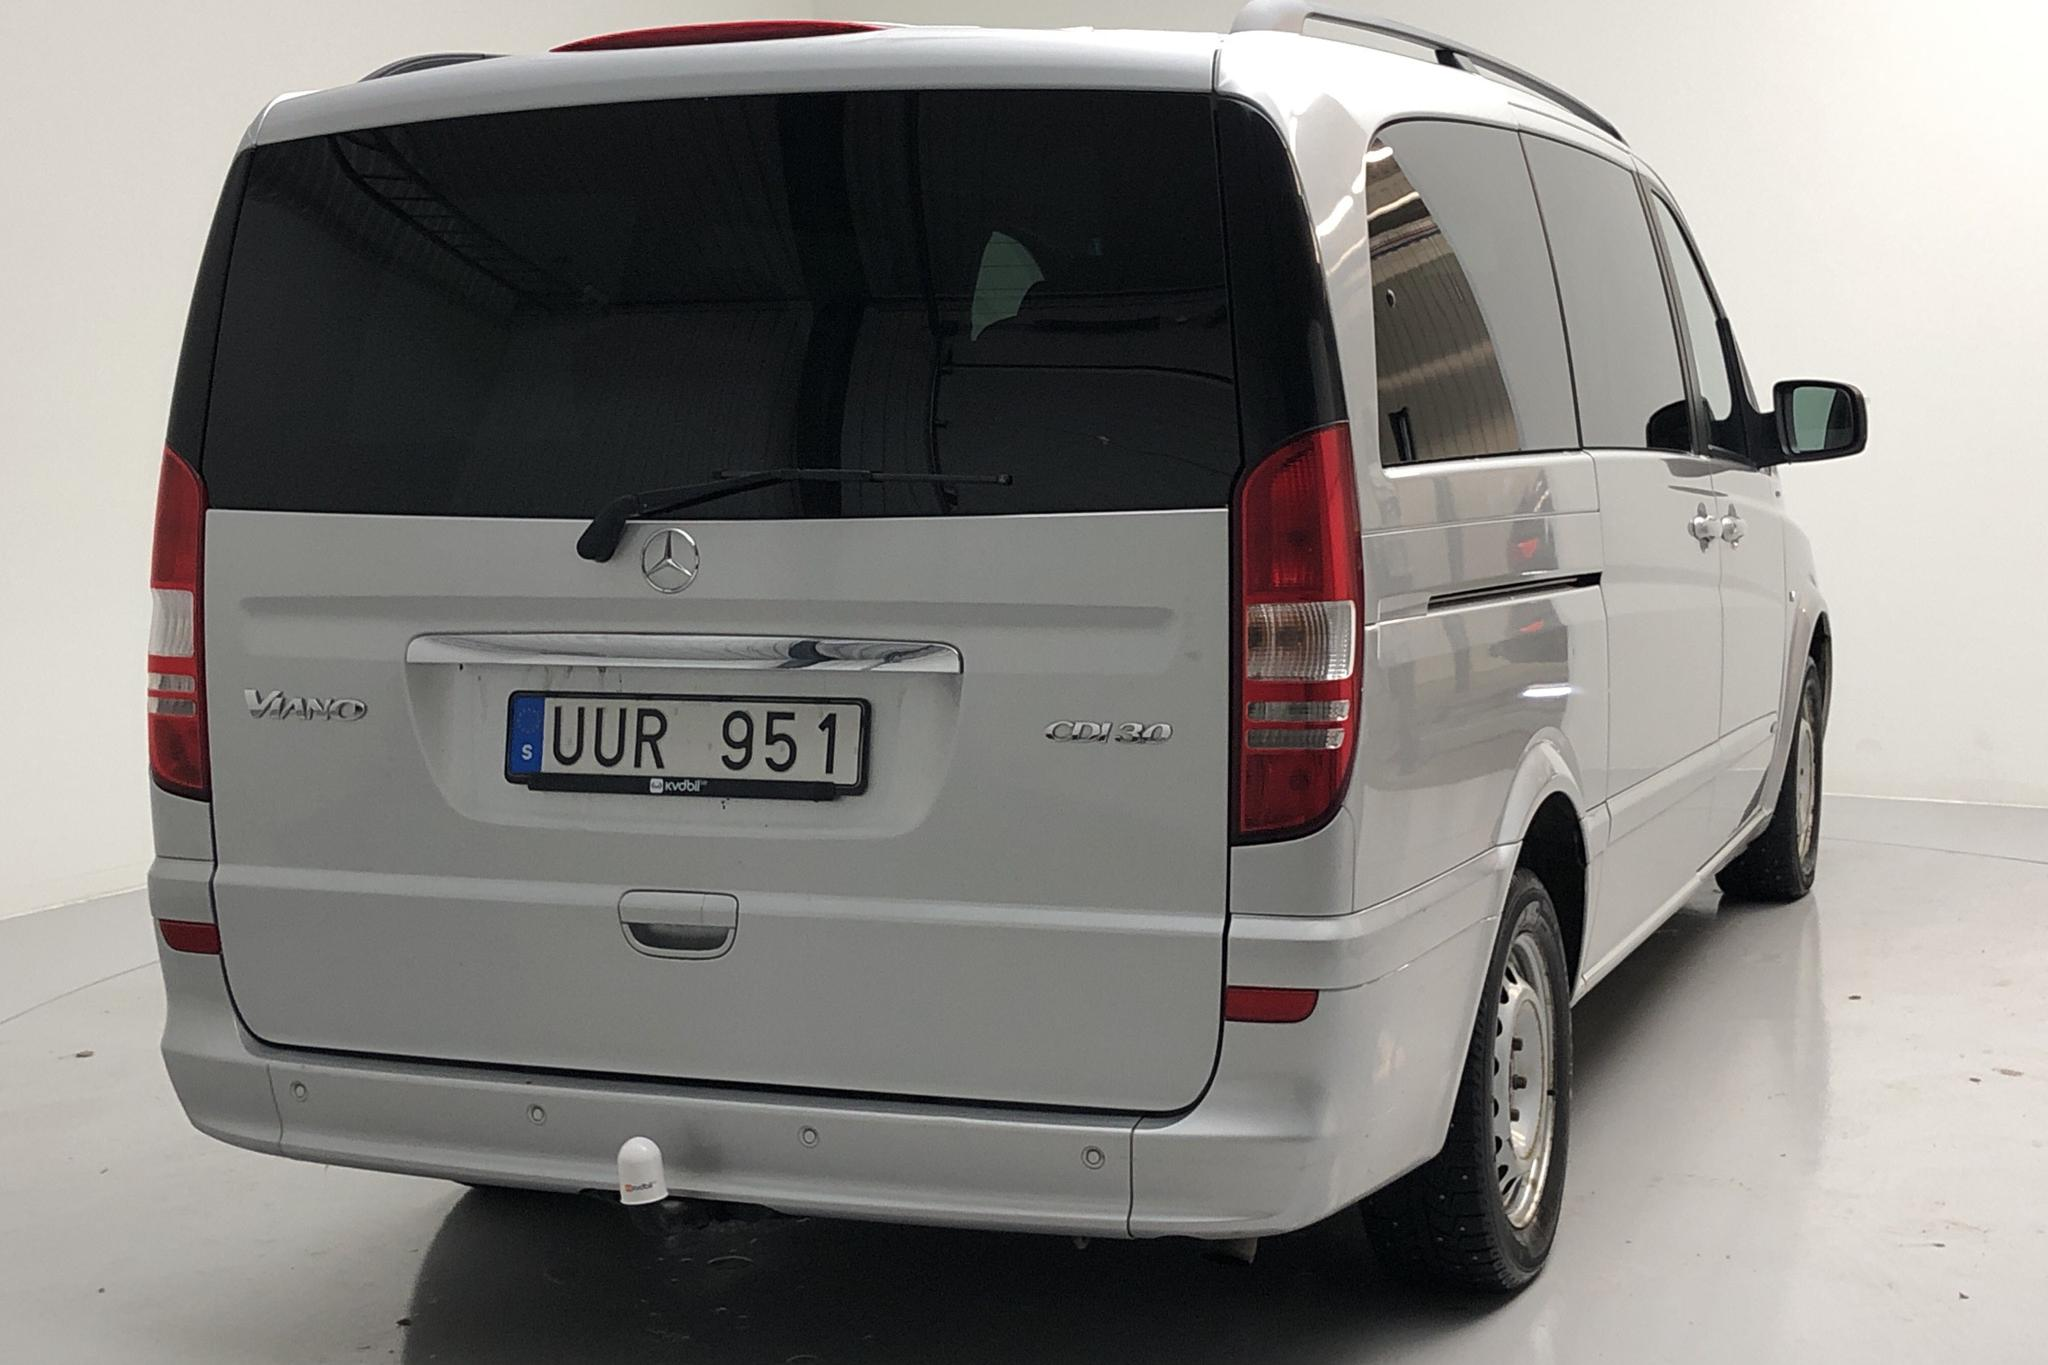 Mercedes Viano 3.0 CDI (224hk) - 25 051 mil - Automat - silver - 2013